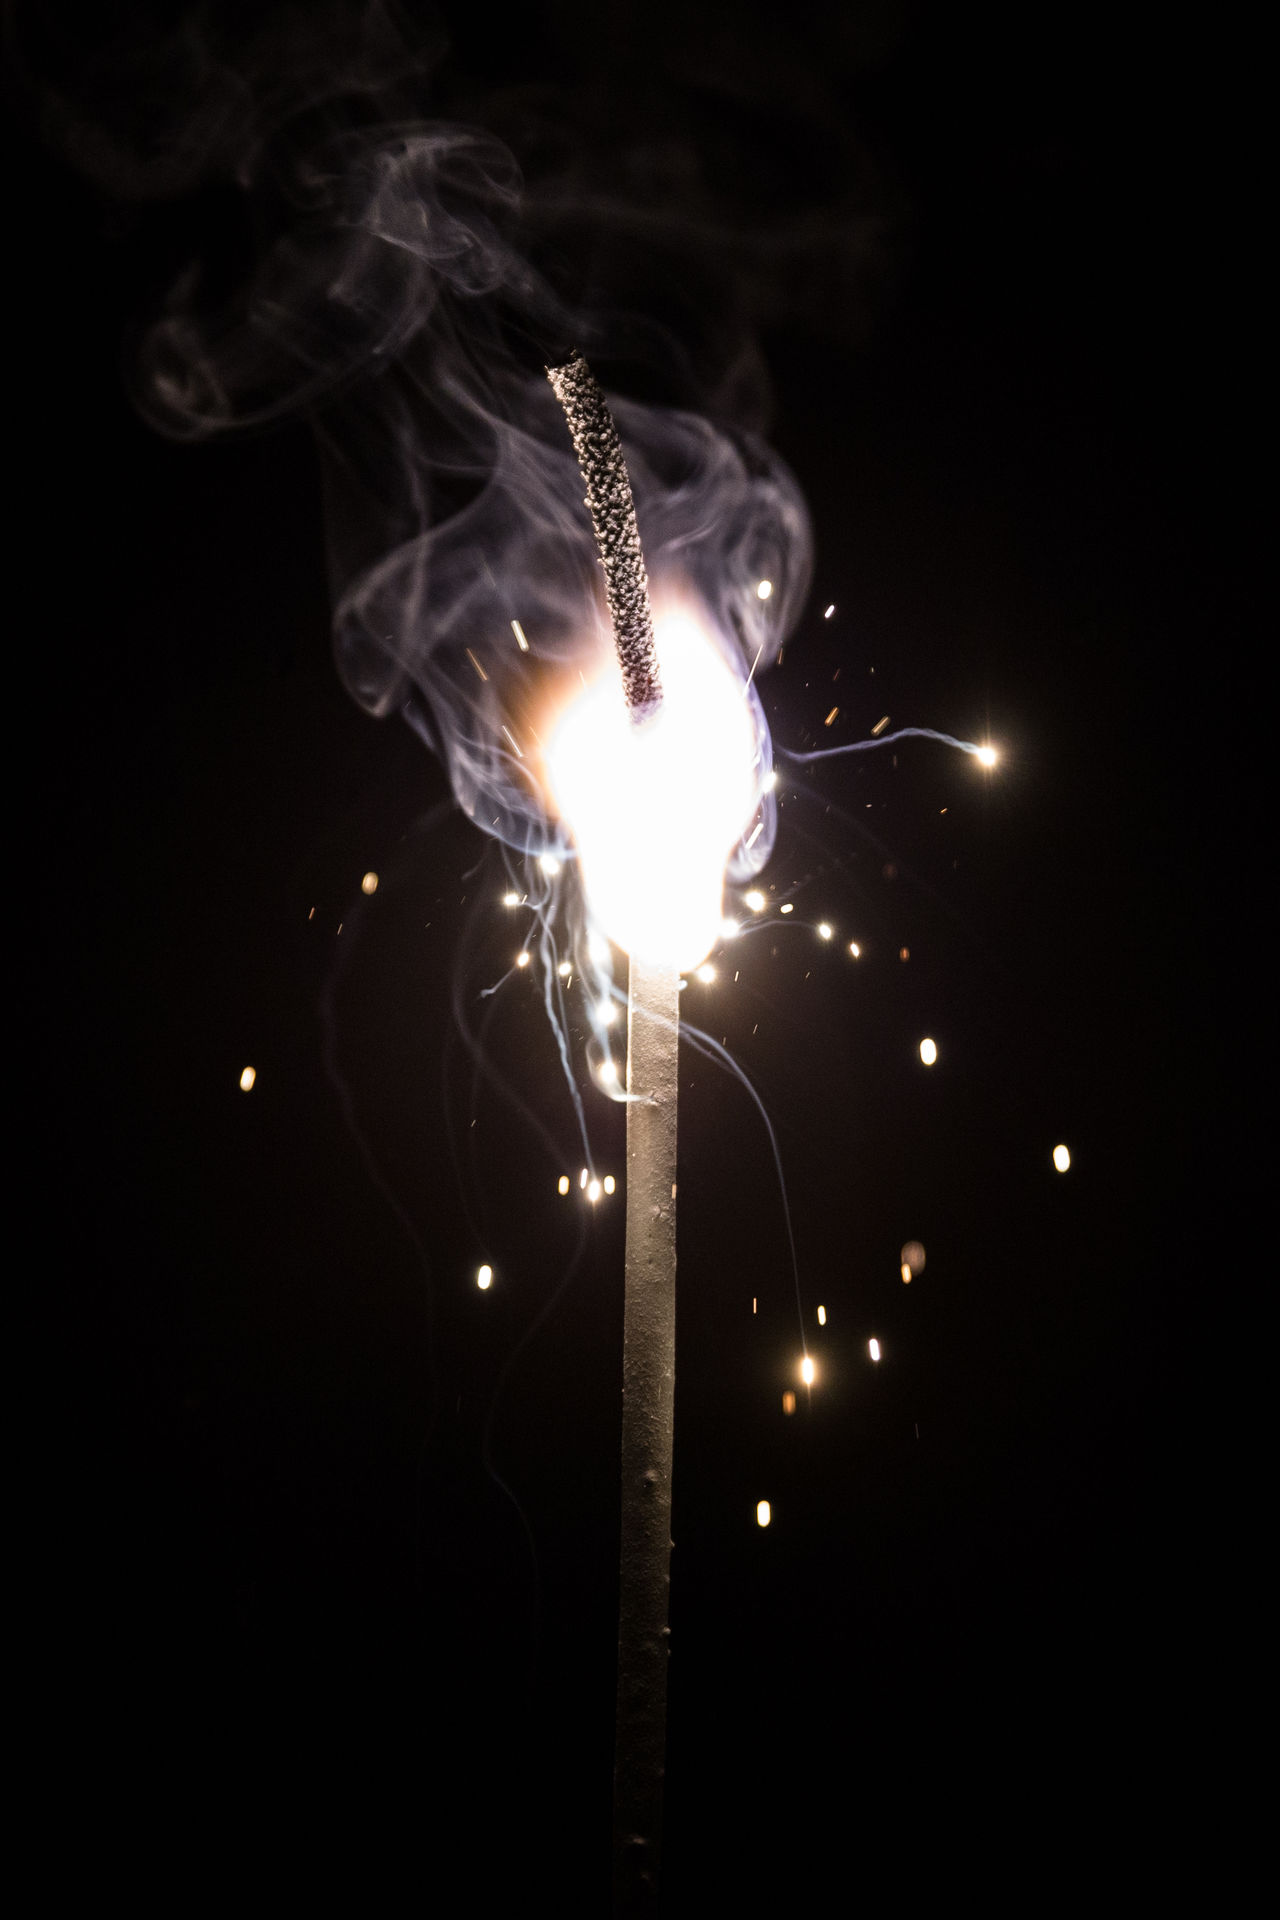 Bengal Fire Bengal Firework Bengal Light Black Background Burning Celebration Dark Fire Fireworks Flambeau Flame Flare Fume Glowing Happy New Year Illuminated Light New Year Night Simplicity Smoke White Smoke New Year Around The World Light In The Darkness Photography In Motion